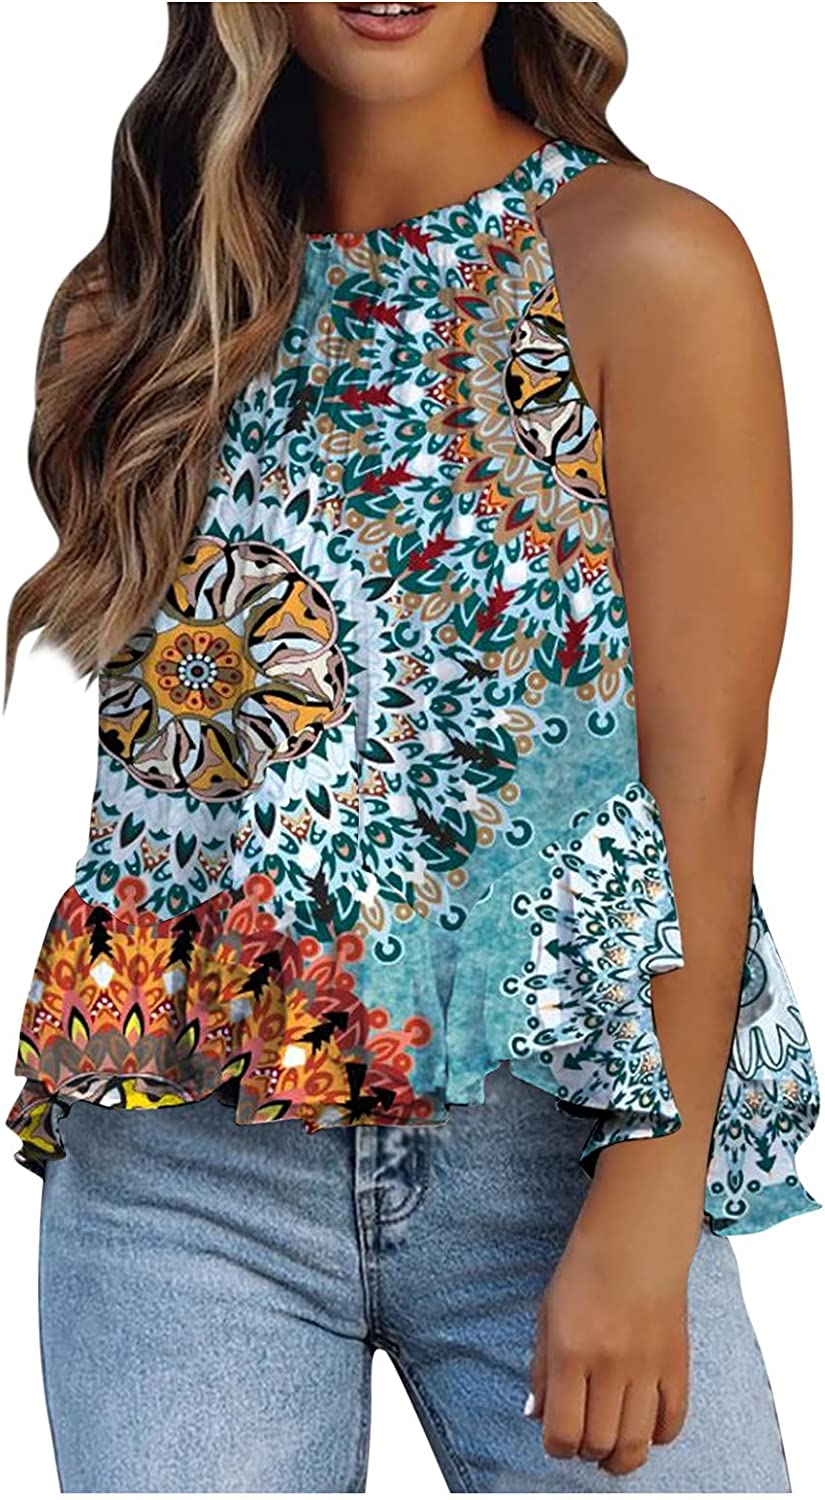 KAMEMIR Womens Tank Tops Sexy, Tops for Women Casual Round Neck Camis Graphic Cute Comfortable Blouses Racerback